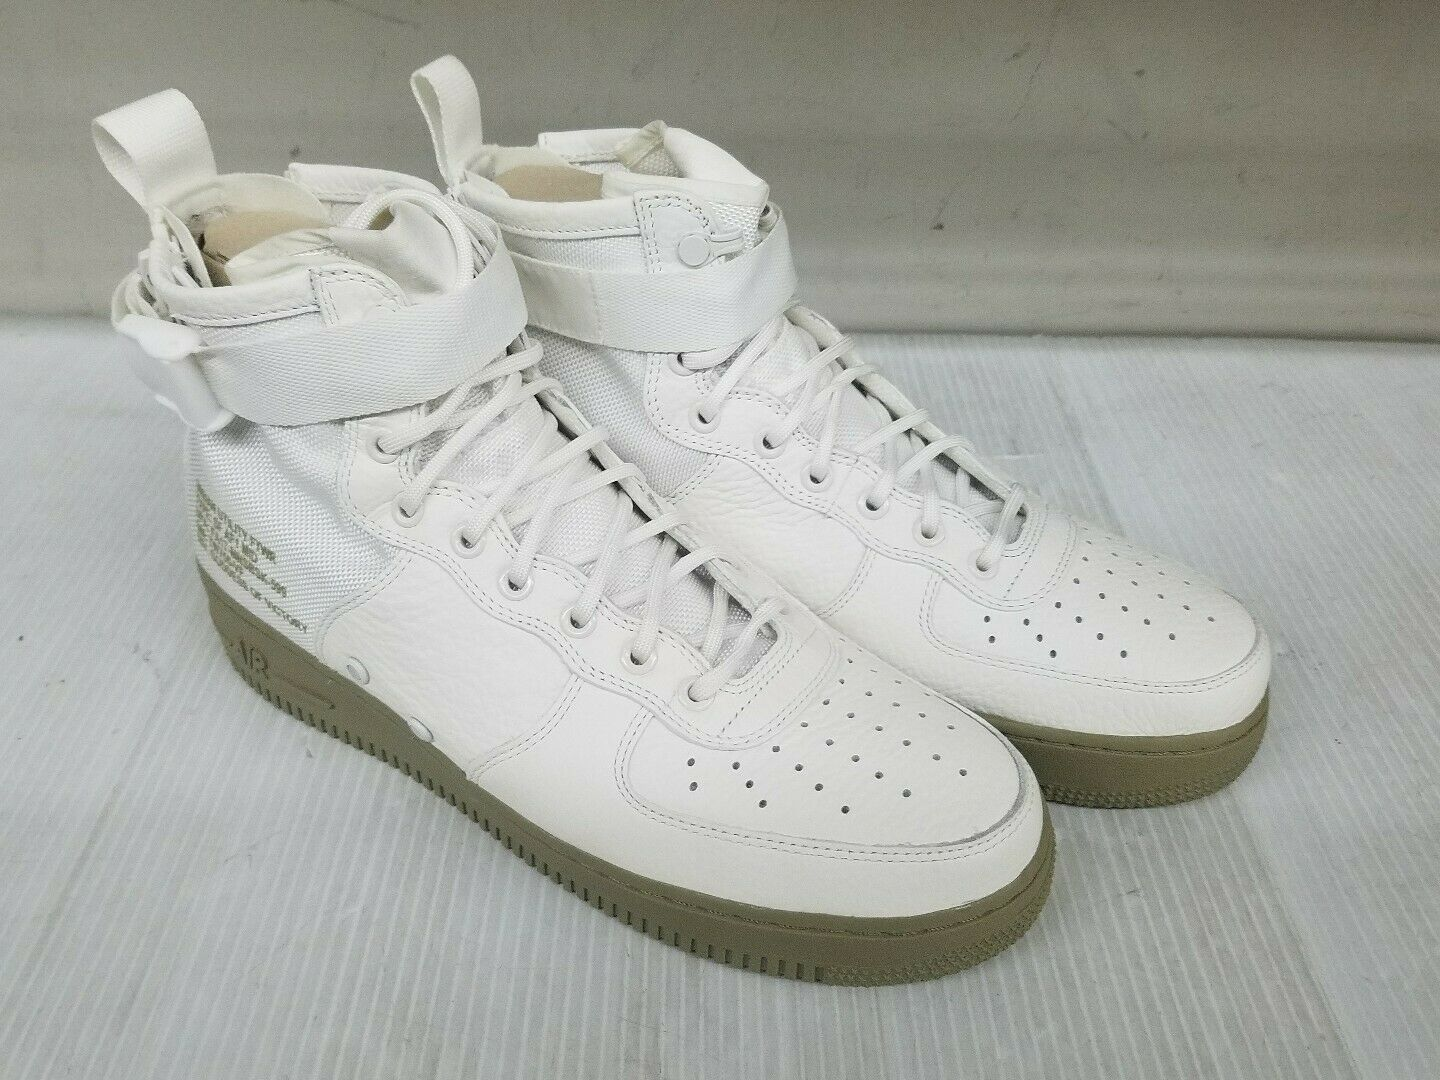 Nike SF AF1 Special Field Air Force 1 Mid Ivory Olive Size 10.5